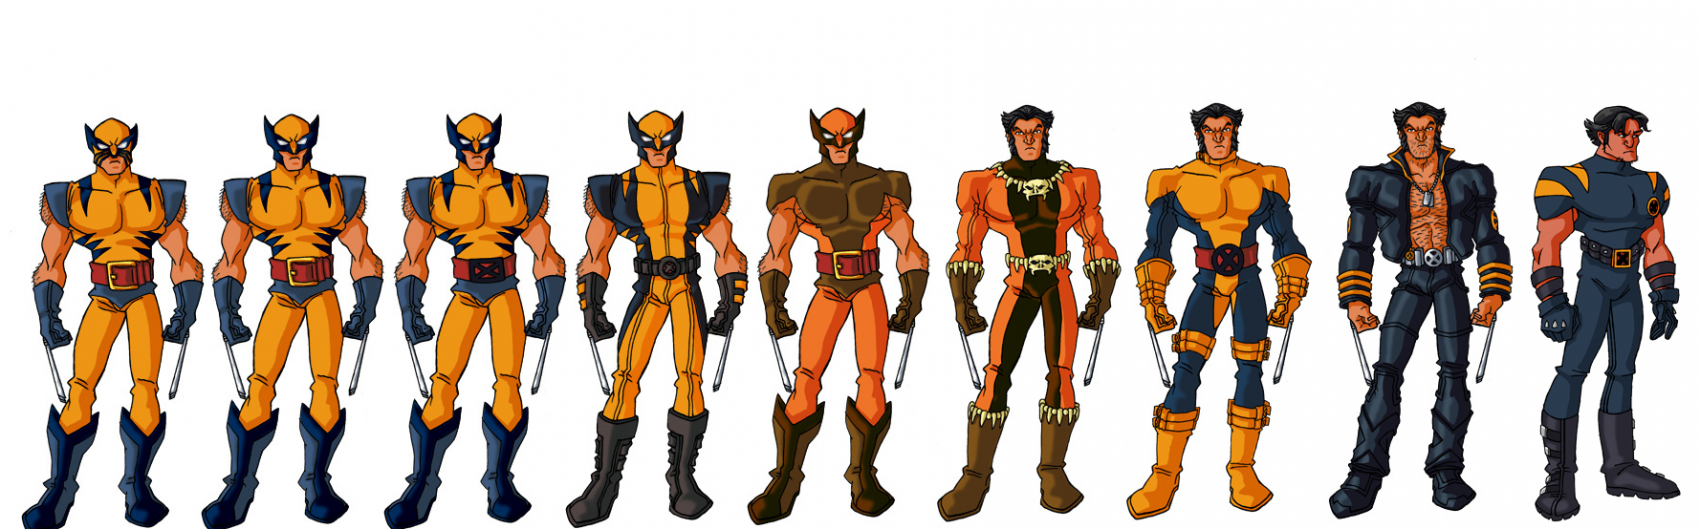 Character Model Wolverine Costumes X Men Evolution Wolverine Costume Costume Evolution Marvel Costumes